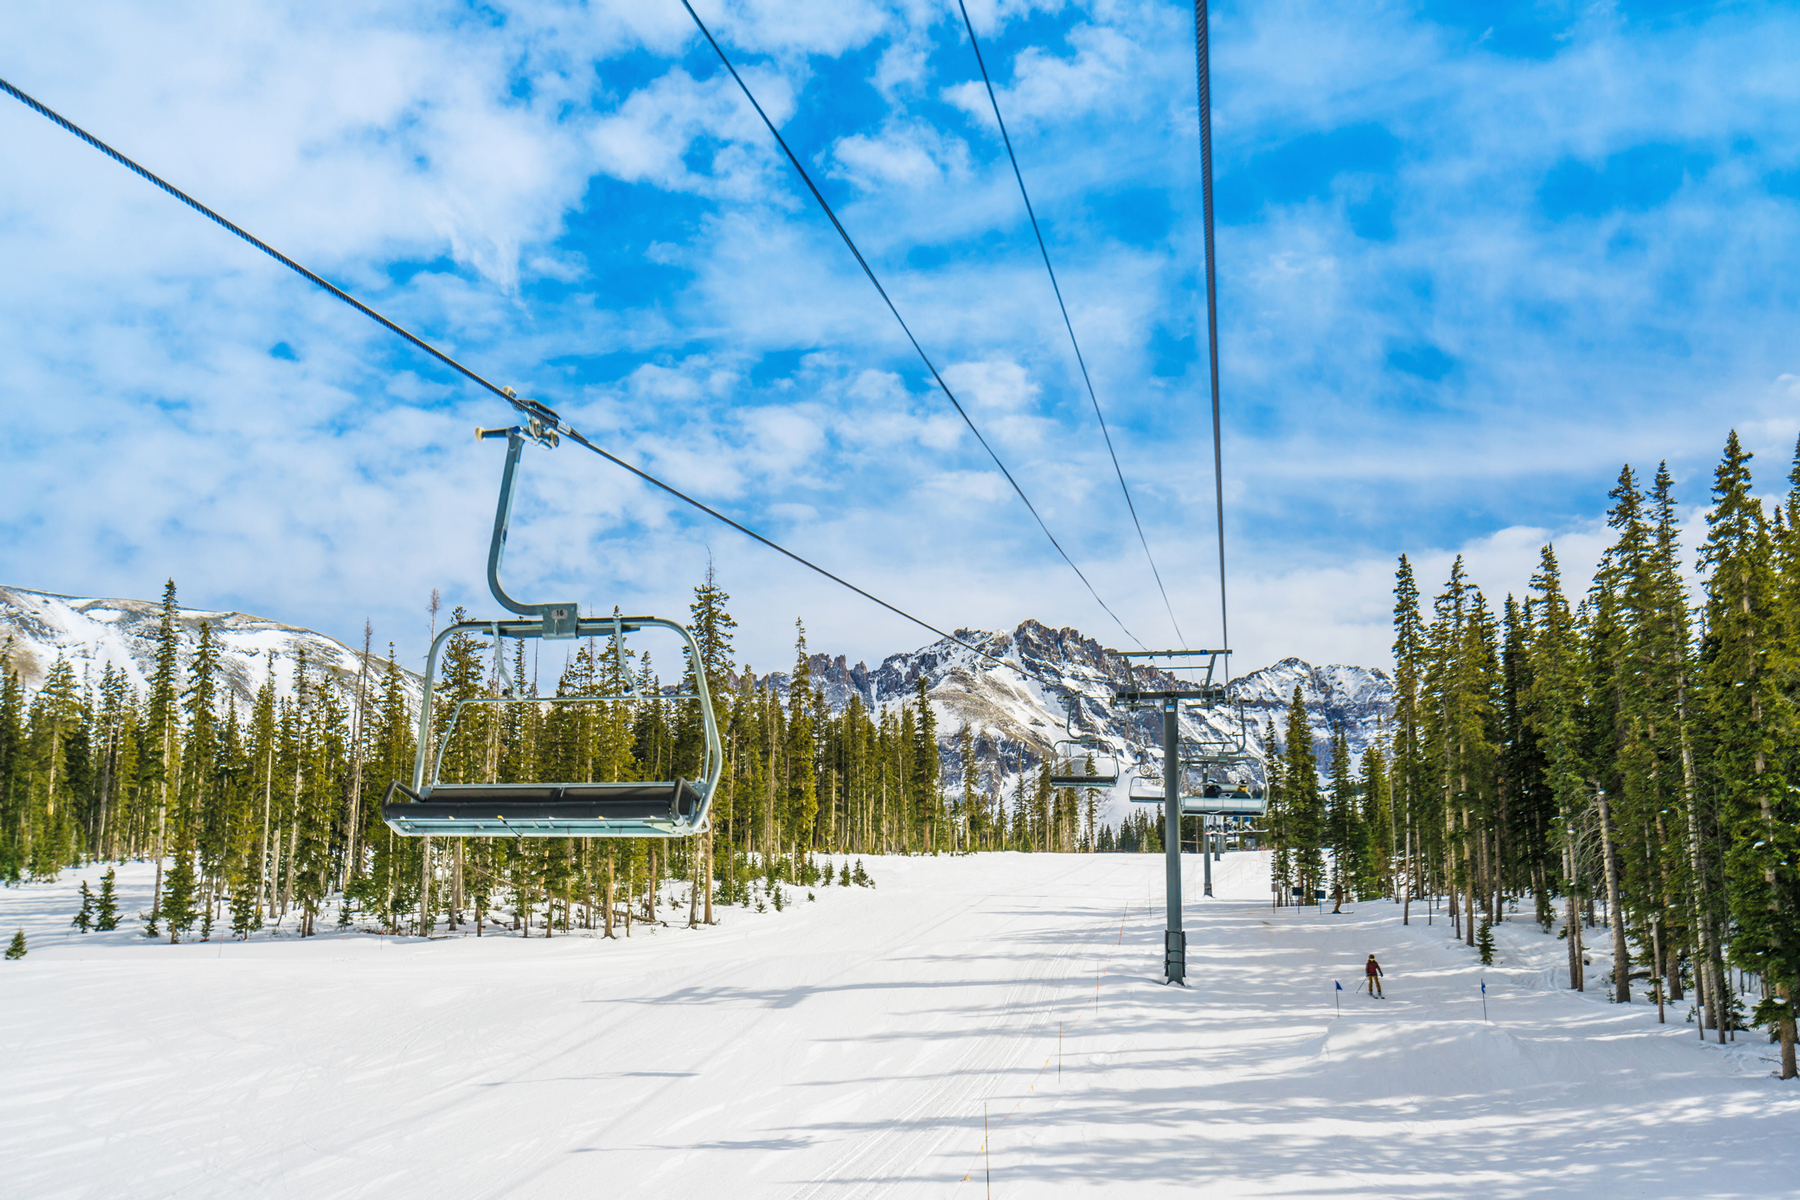 Resort ski lift in Telluride, Colorado during winter